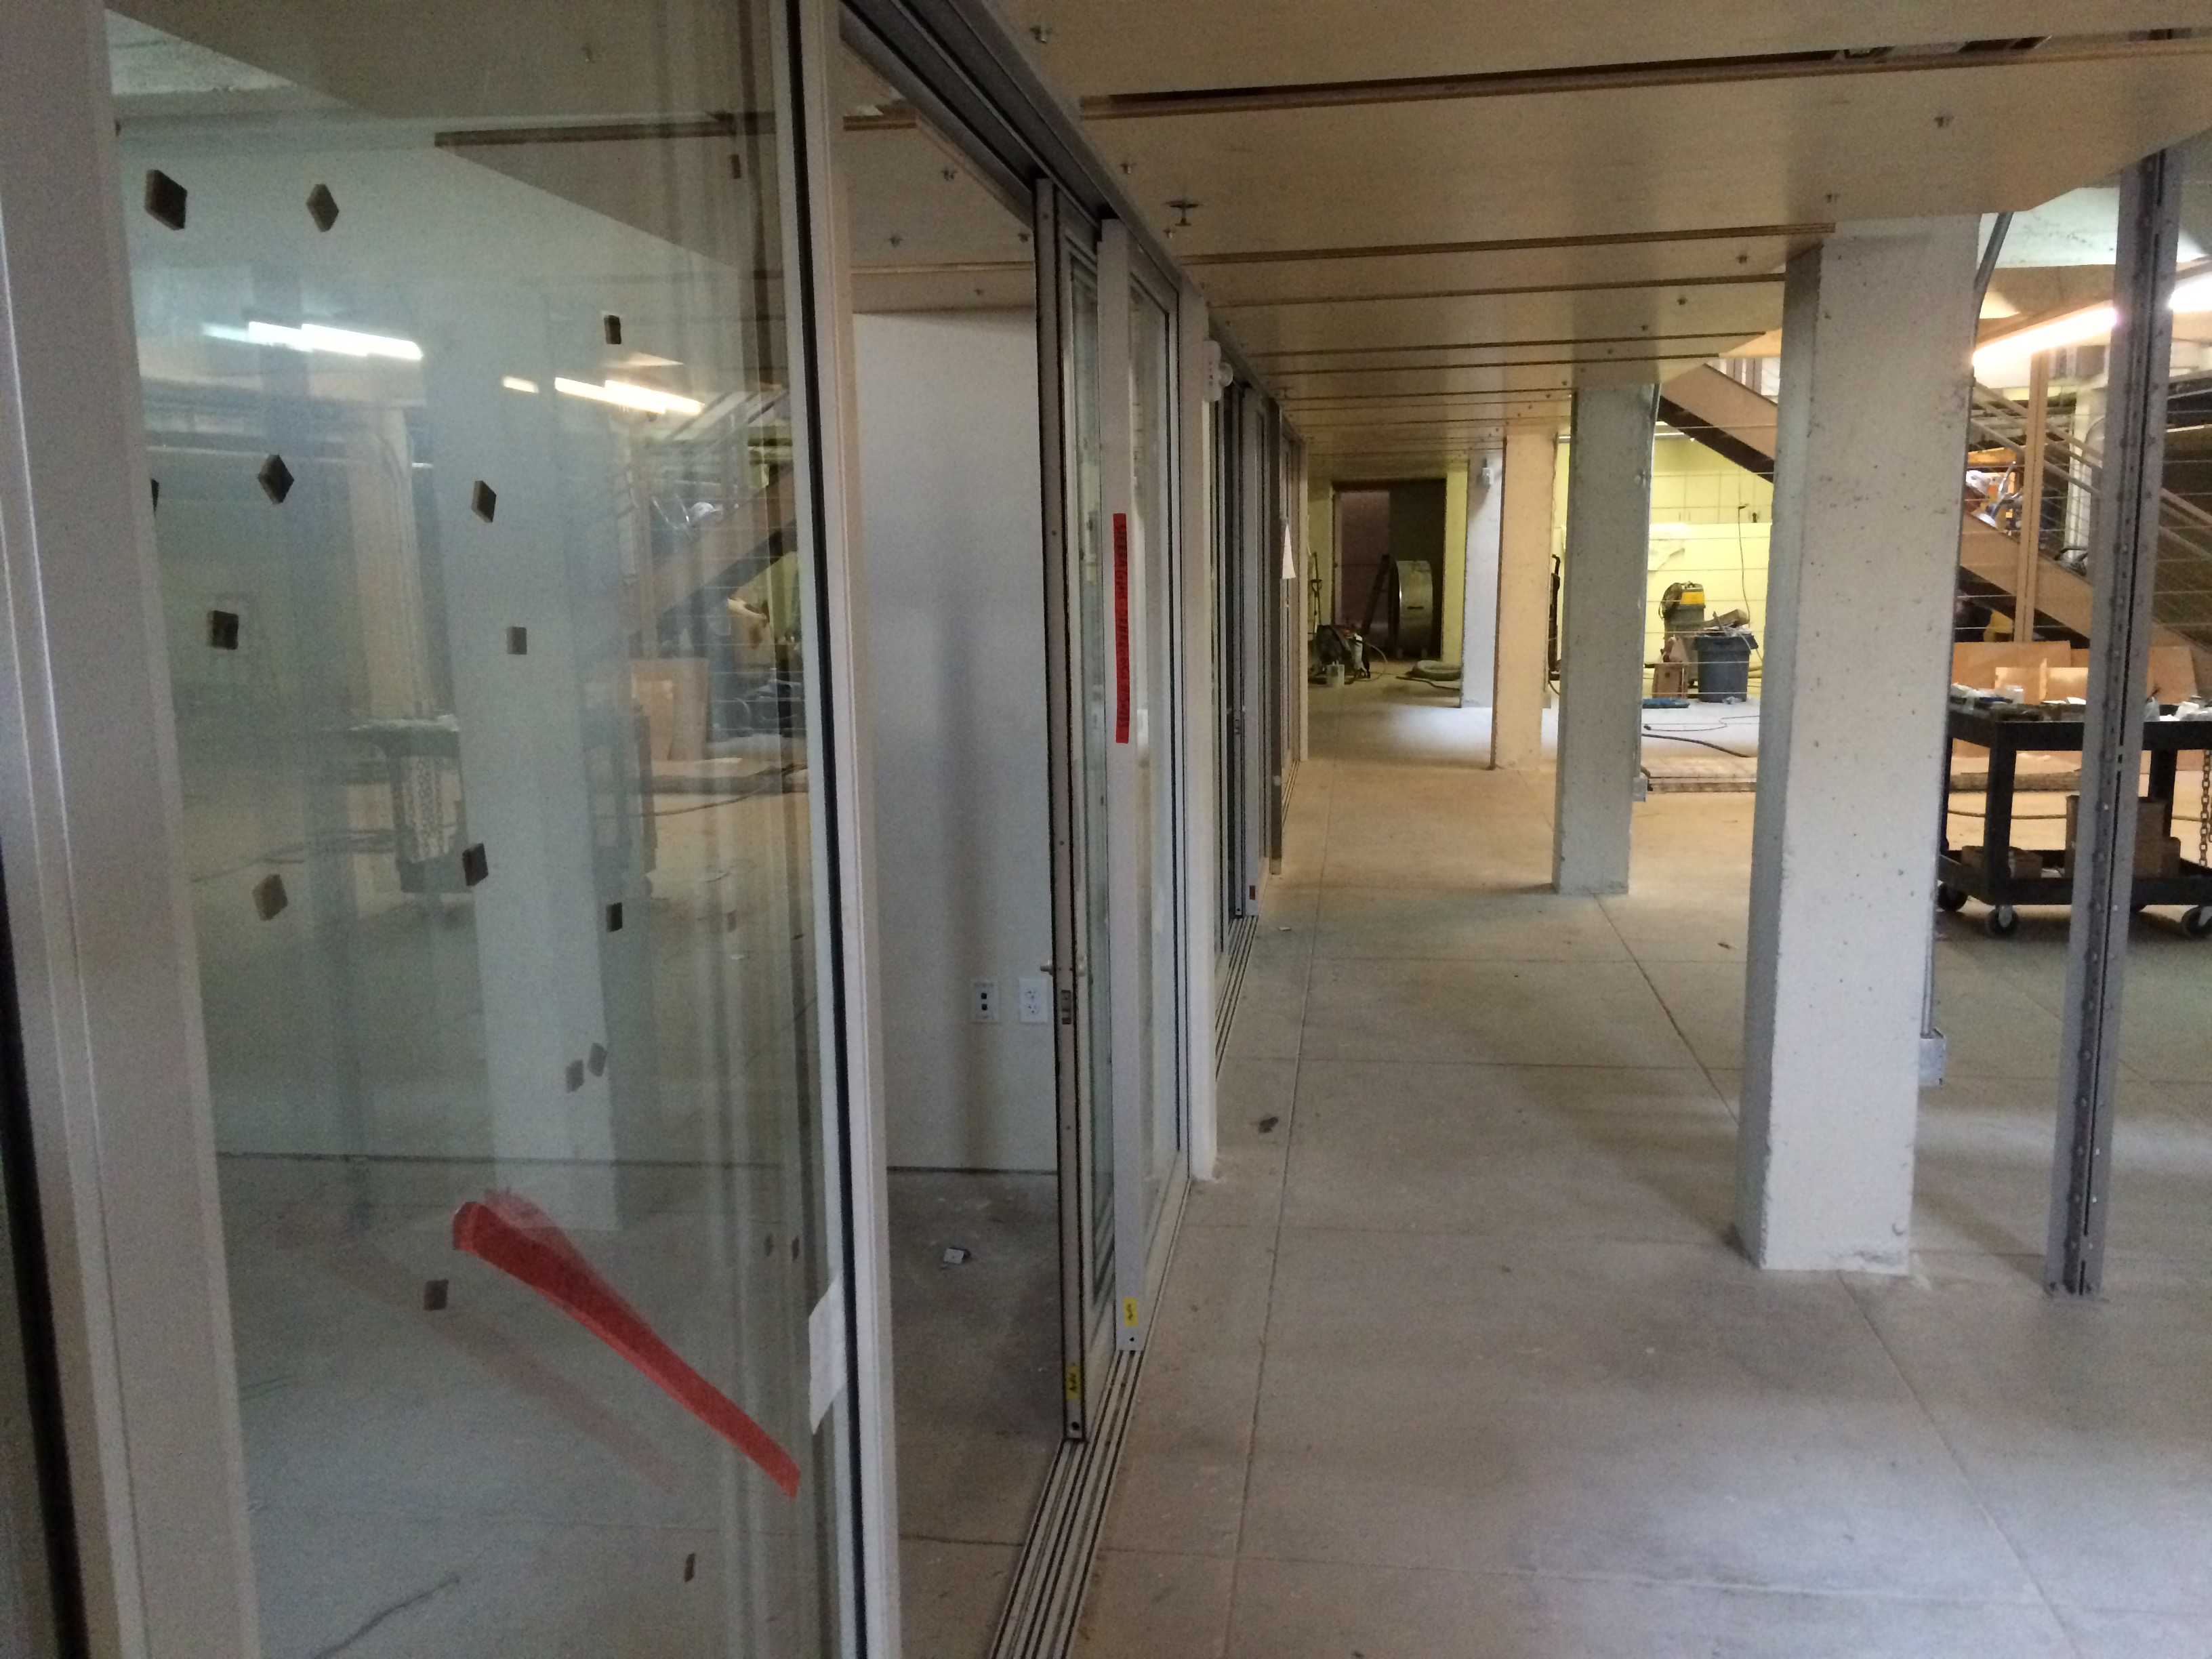 Sliding glass doors were installed on the director's offices to maximize space.